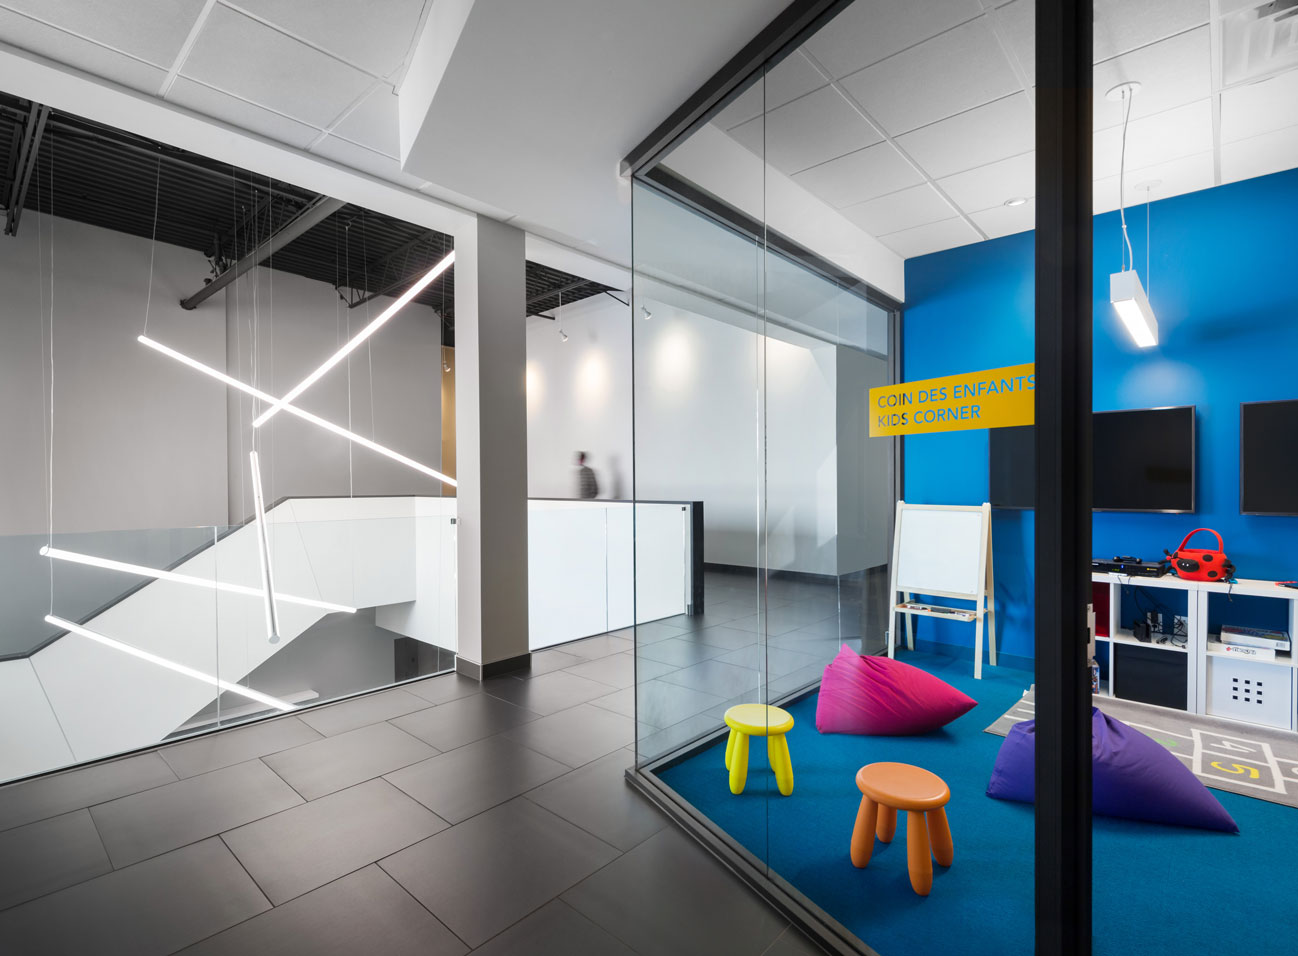 In-office daycare at Medicom showing blue wall and carpet and bright colored stools and bean bag chairs, staircase and suspended lights in background.